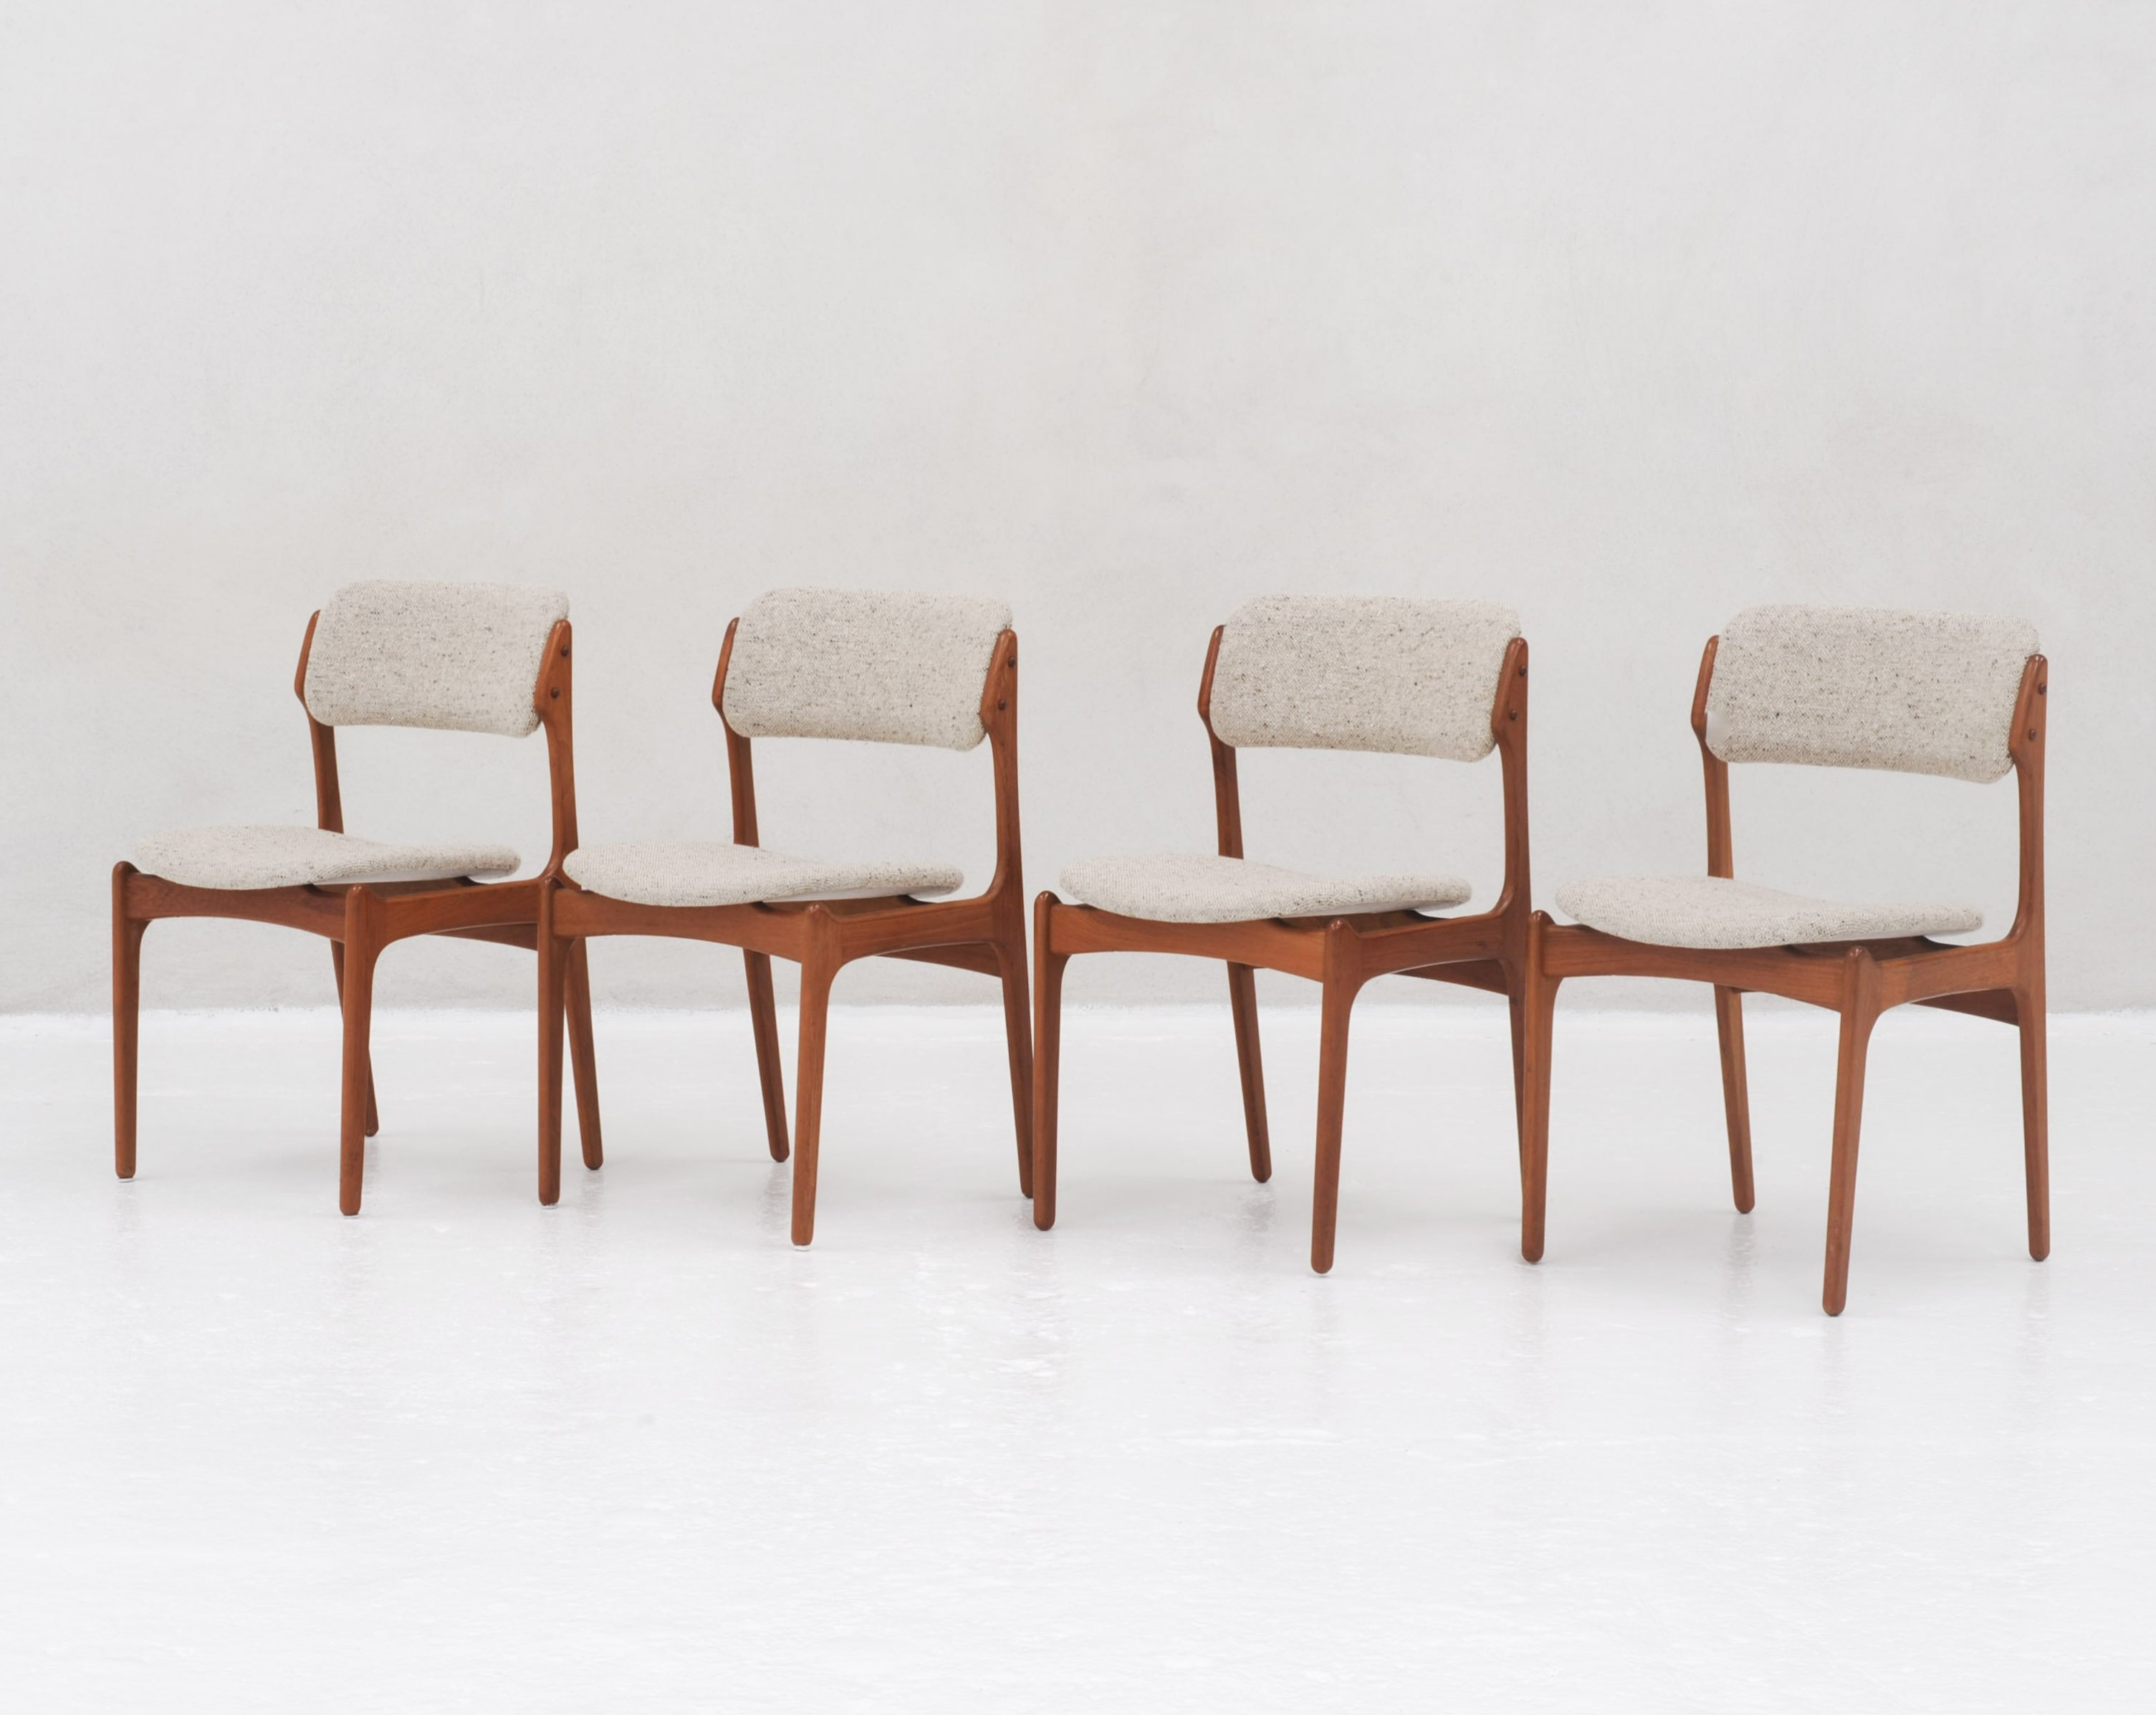 Set of 4 Model 49 Dining chairs in teak by Erik Buck for O D